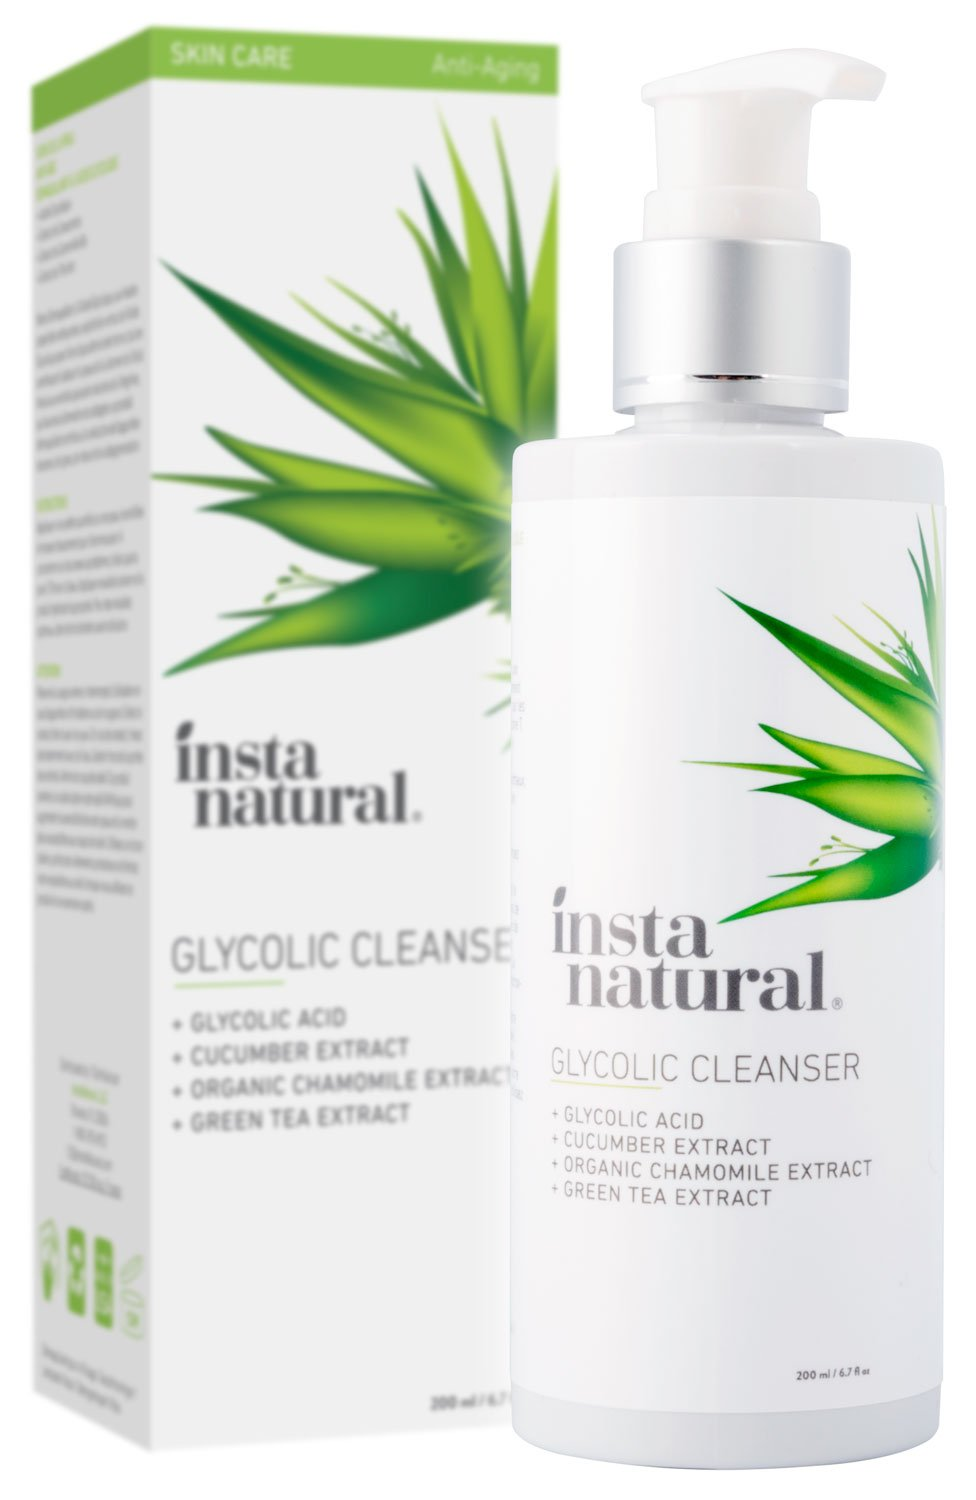 Glycolic Facial Cleanser - Anti Wrinkle, Fine Line, Age Spot & Hyperpigmentation Face Wash - Clear Dead Skin & Pores - With Glycolic Acid, Organic Extract Blend & Arginine - InstaNatural - 6.7 oz